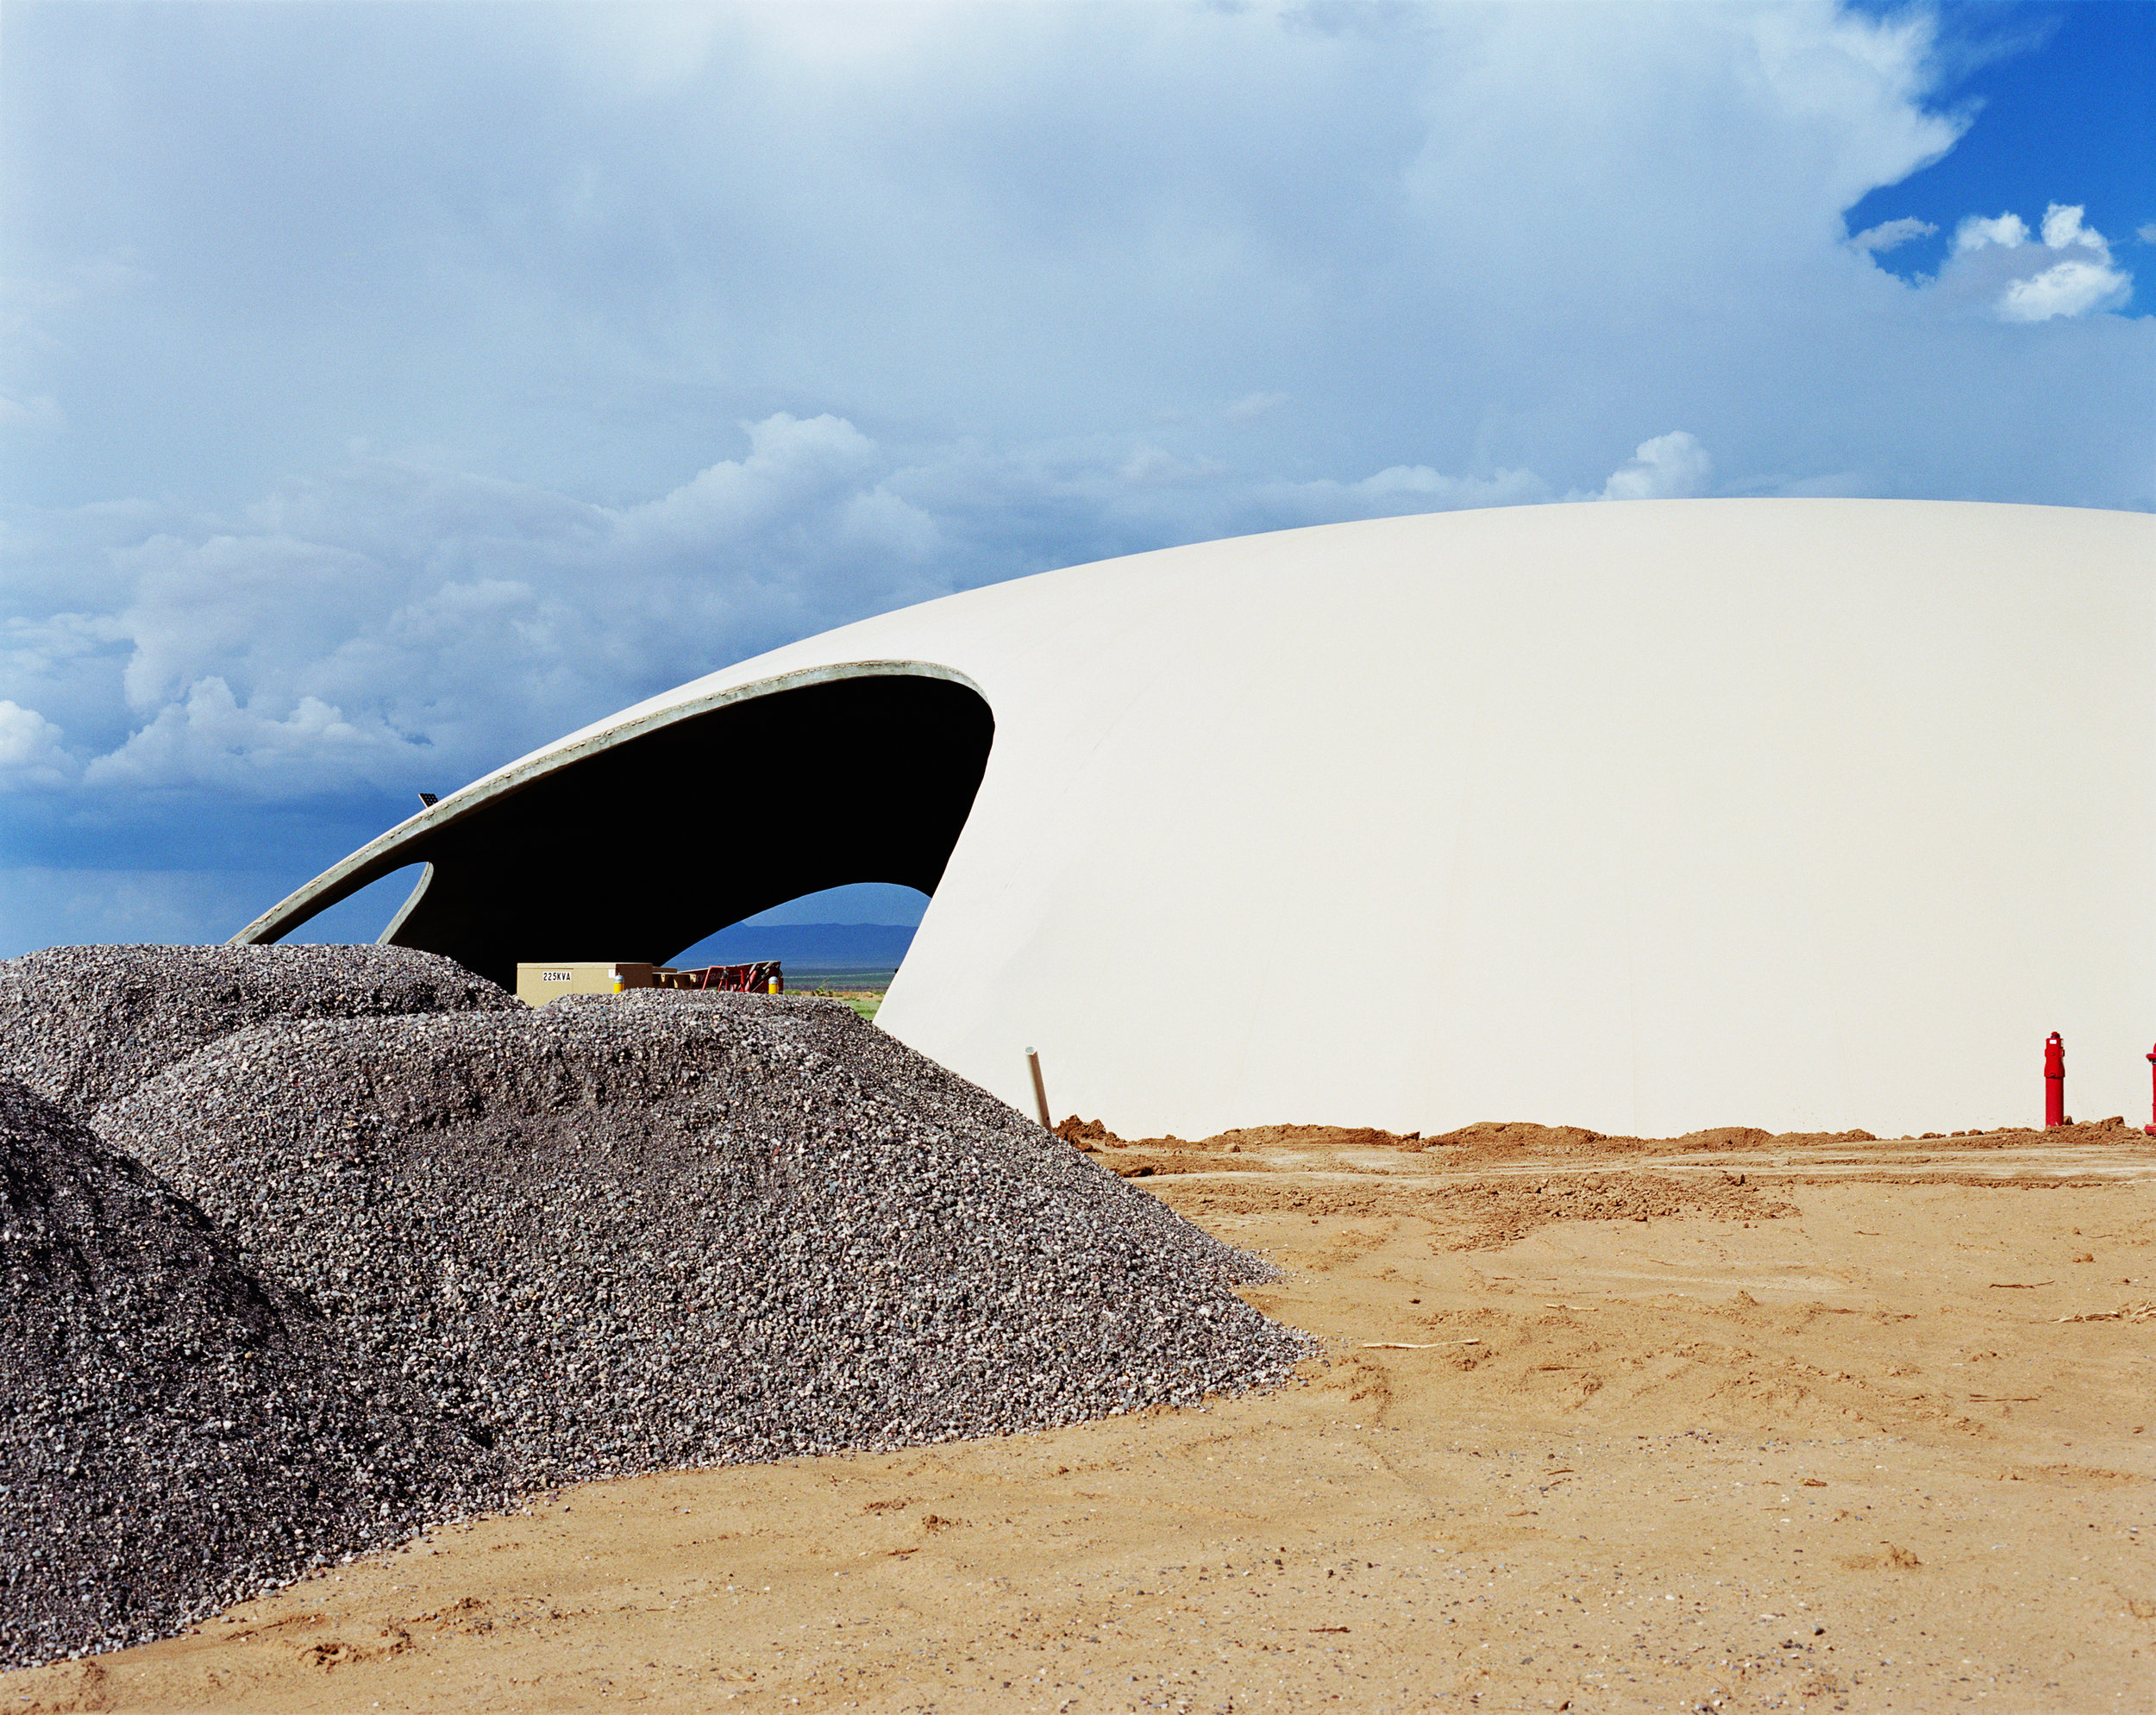 Connie Samaras,  Spaceport America: Dome Construction, Air Fire Rescue Facility, 2010   Digital pigment print, 24 x 30 inches, edition of 5   Inquire